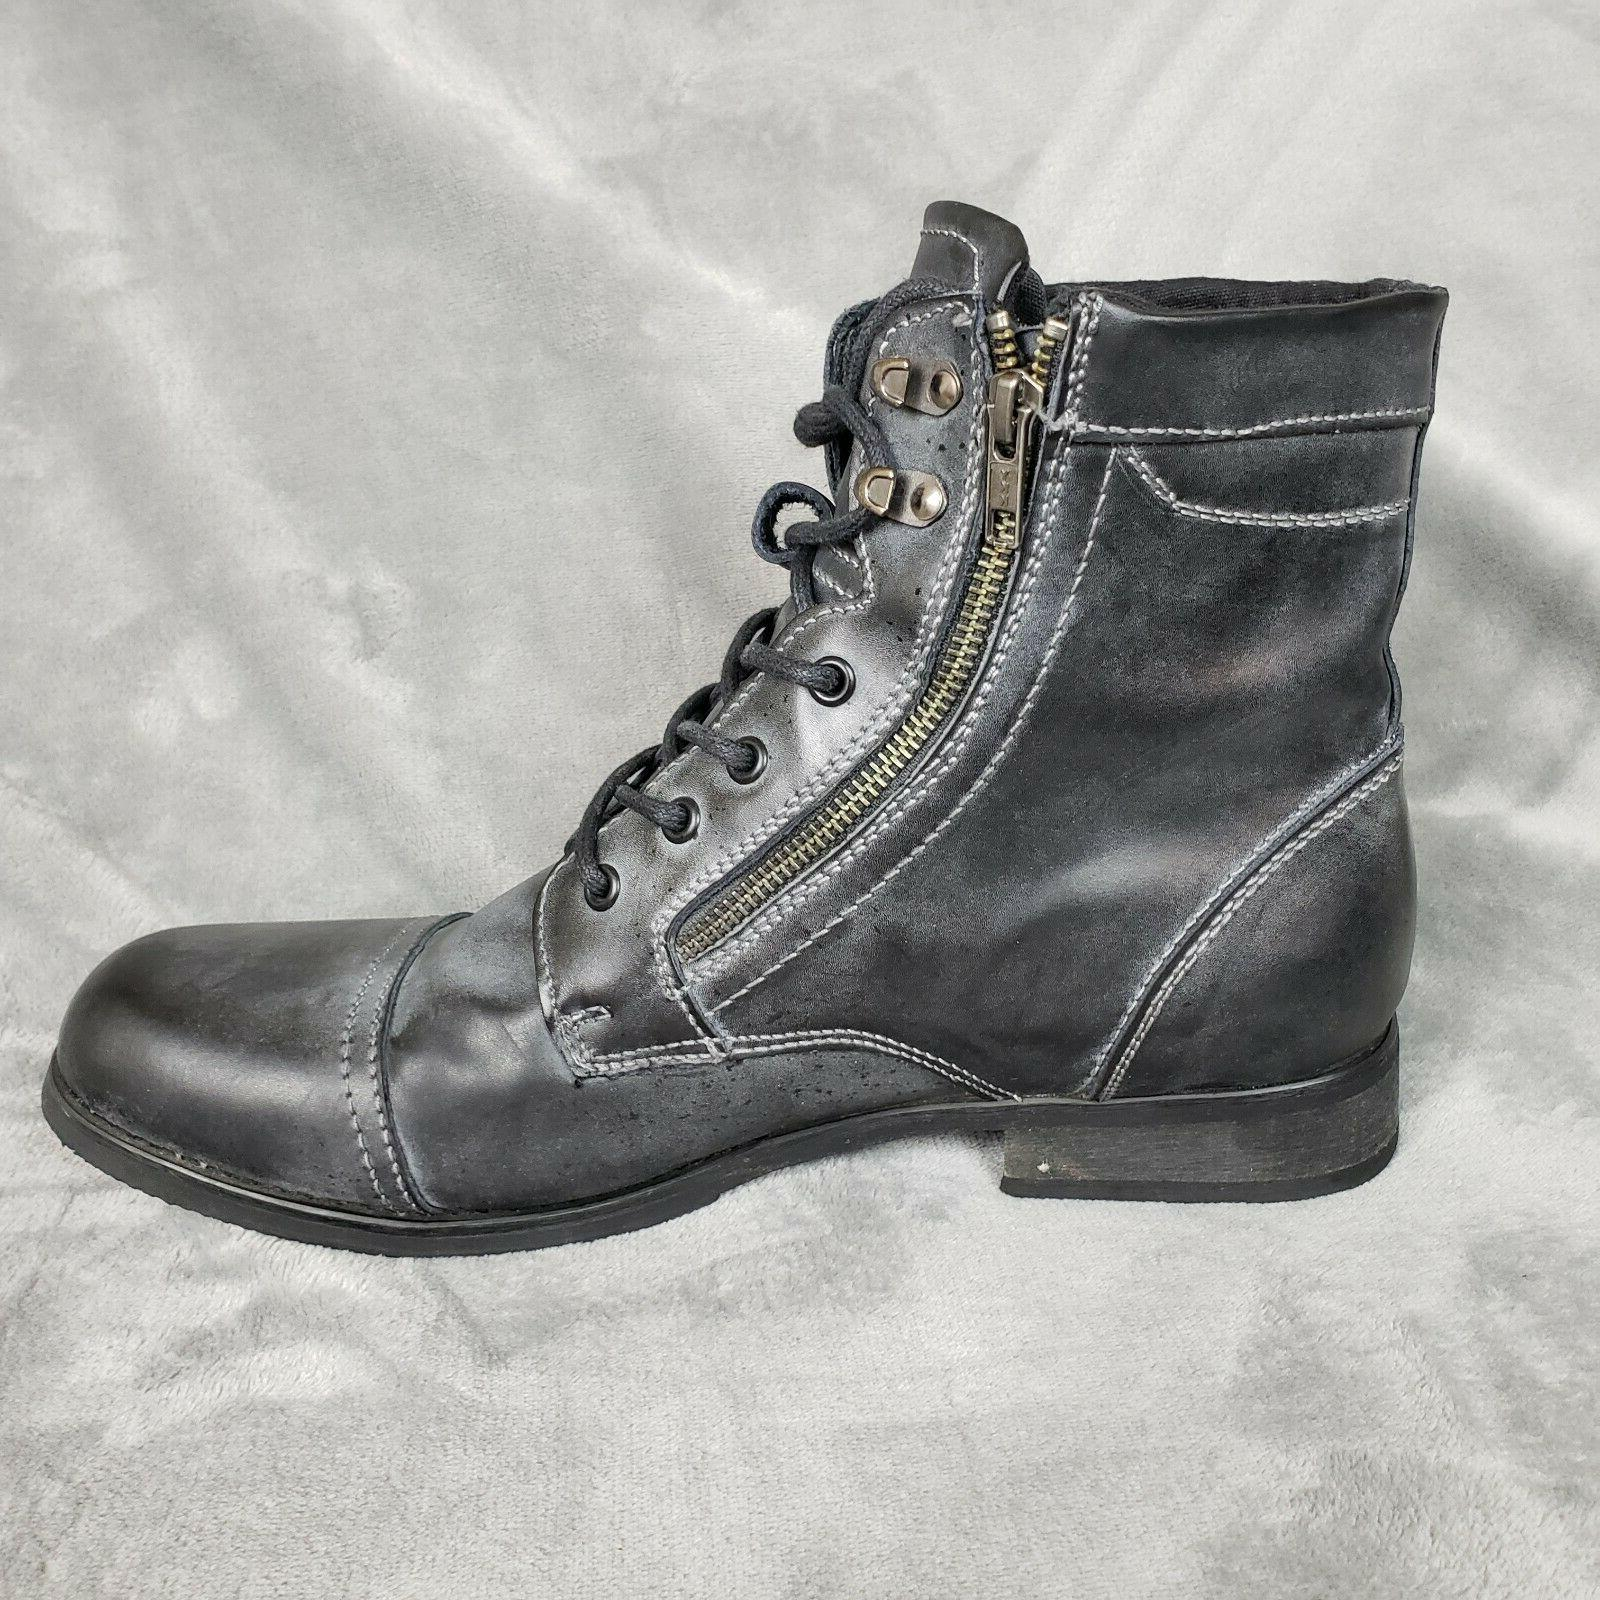 BED Rustic Distressed Leather Boots 11.5